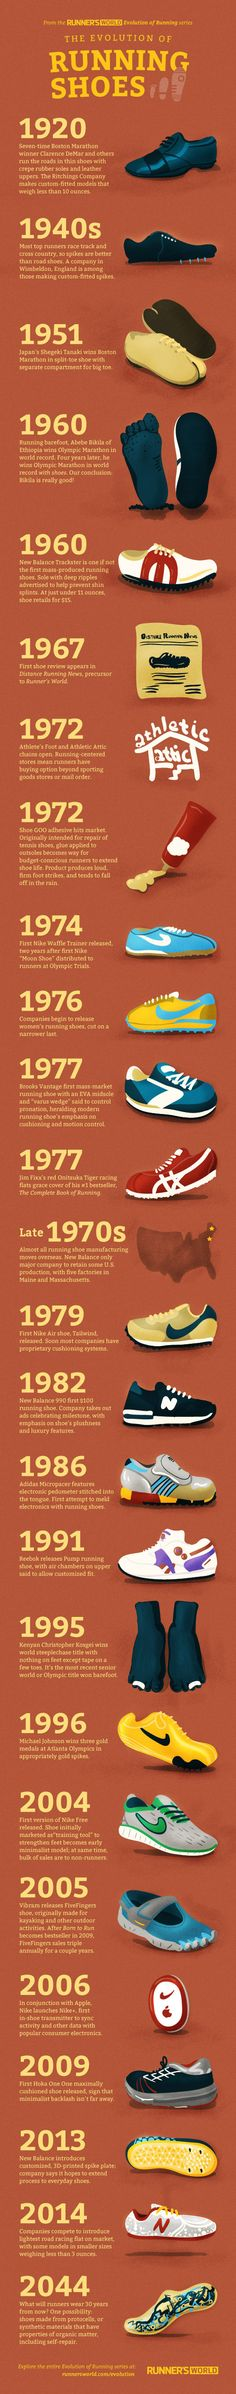 A Brief History of the Running Shoe By Dan Fuehrer, Scott Douglas Published May 12, 2014